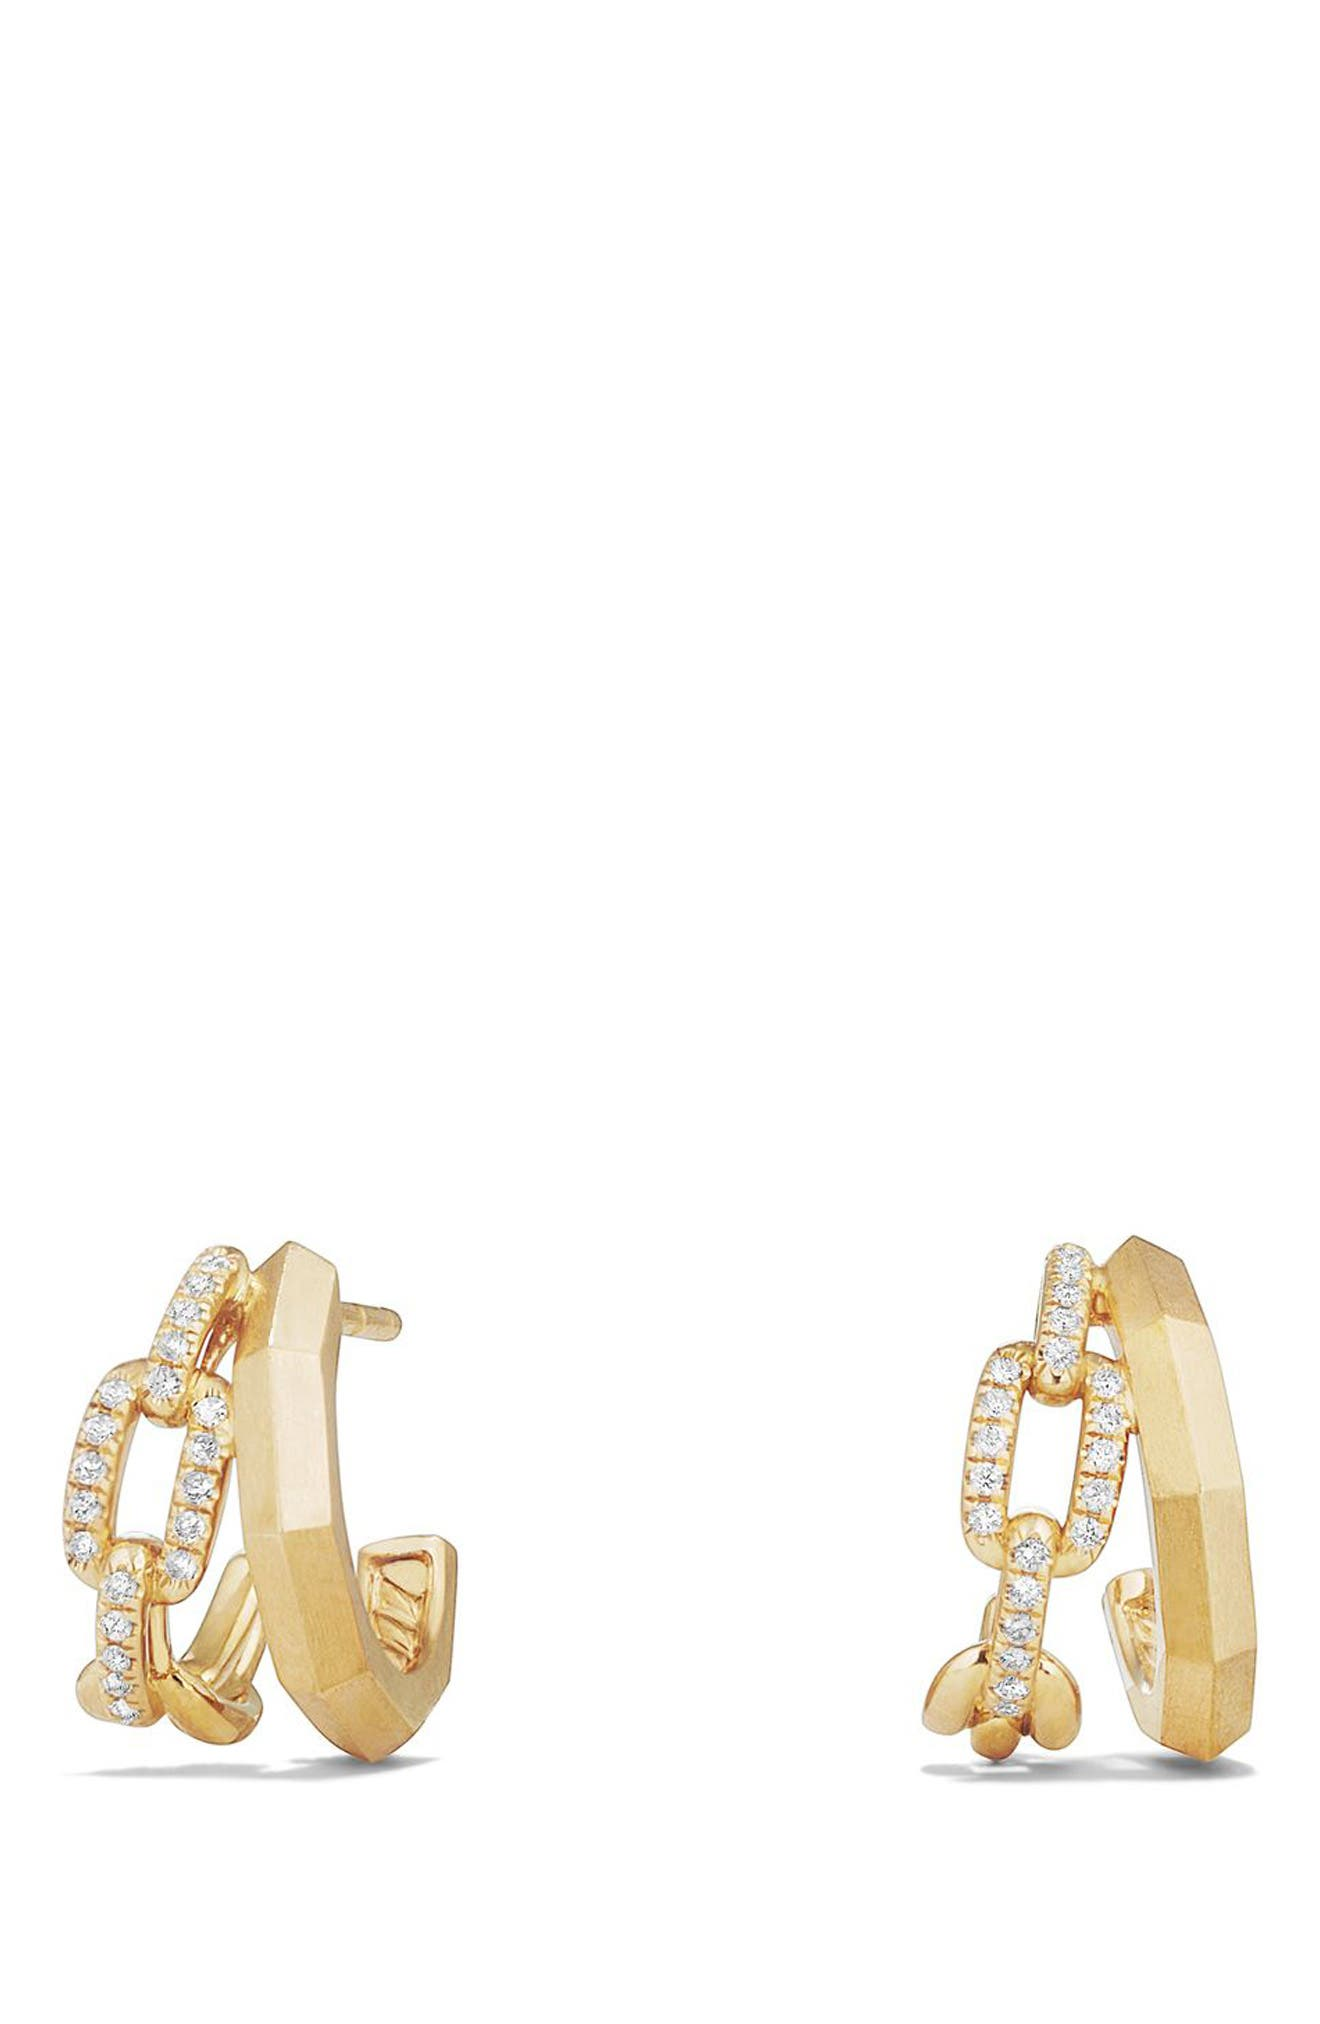 Stax Double Hoop Earrings with Diamonds,                         Main,                         color, YELLOW GOLD